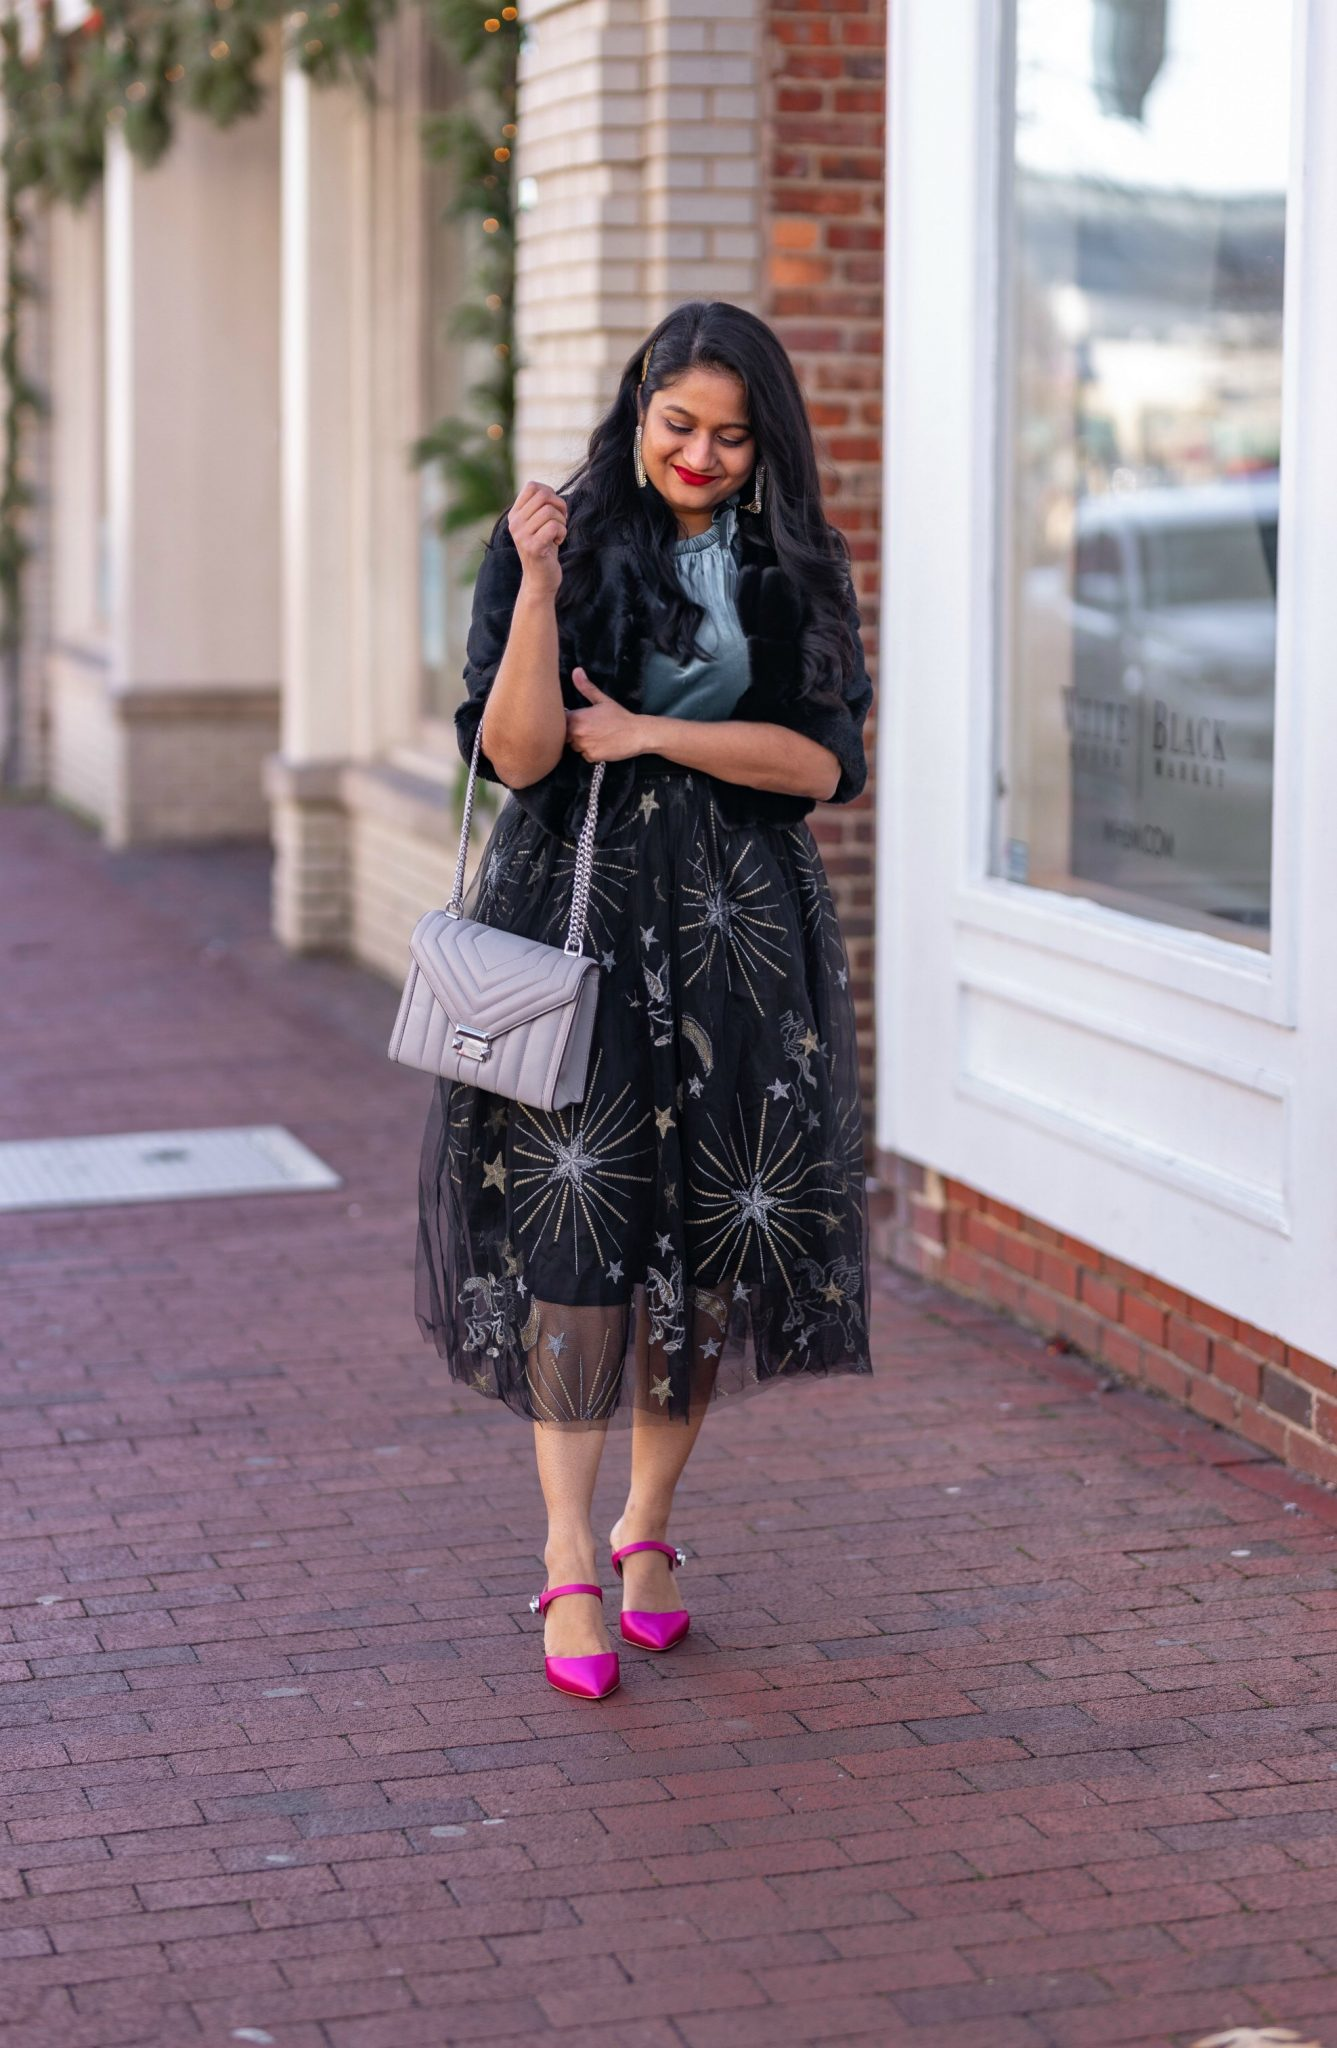 Affordable New Years Eve Outfits to Ring In the New Year featured by top US modest blog, Dreaming Loud: Alcea Rosea Black Tulle tutu Skirt, Velvet Camisole, Banana Republic Satin Pink Heels, WHBM Faux Bolero Jacket2